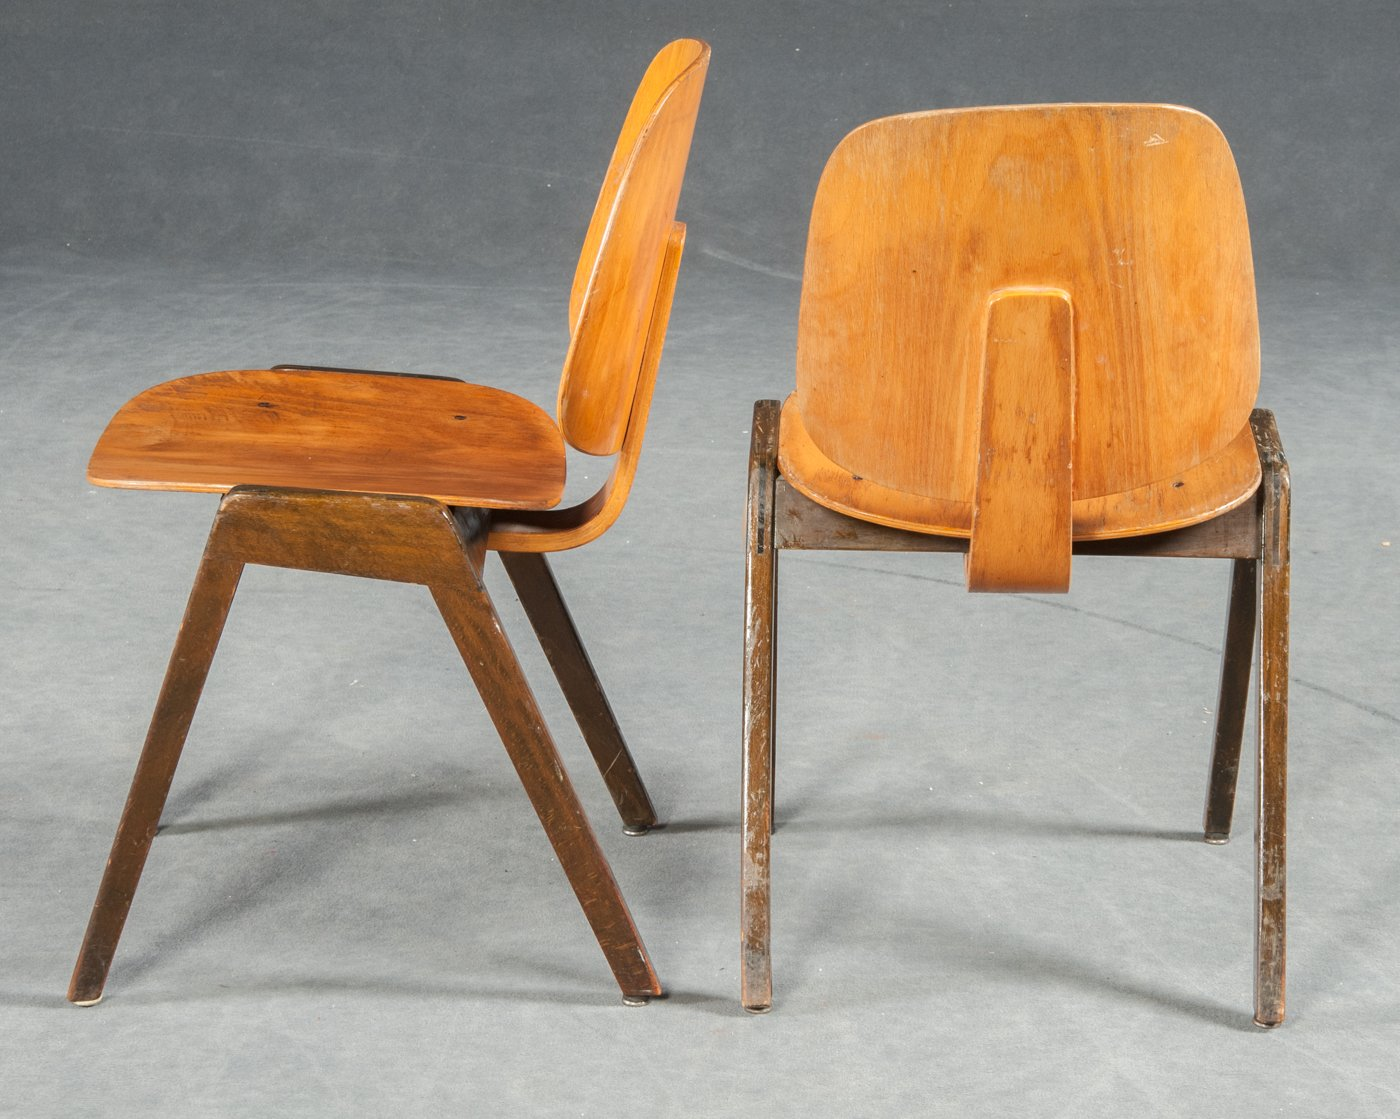 Vintage Bentwood Chairs From Thonet, Set Of 3